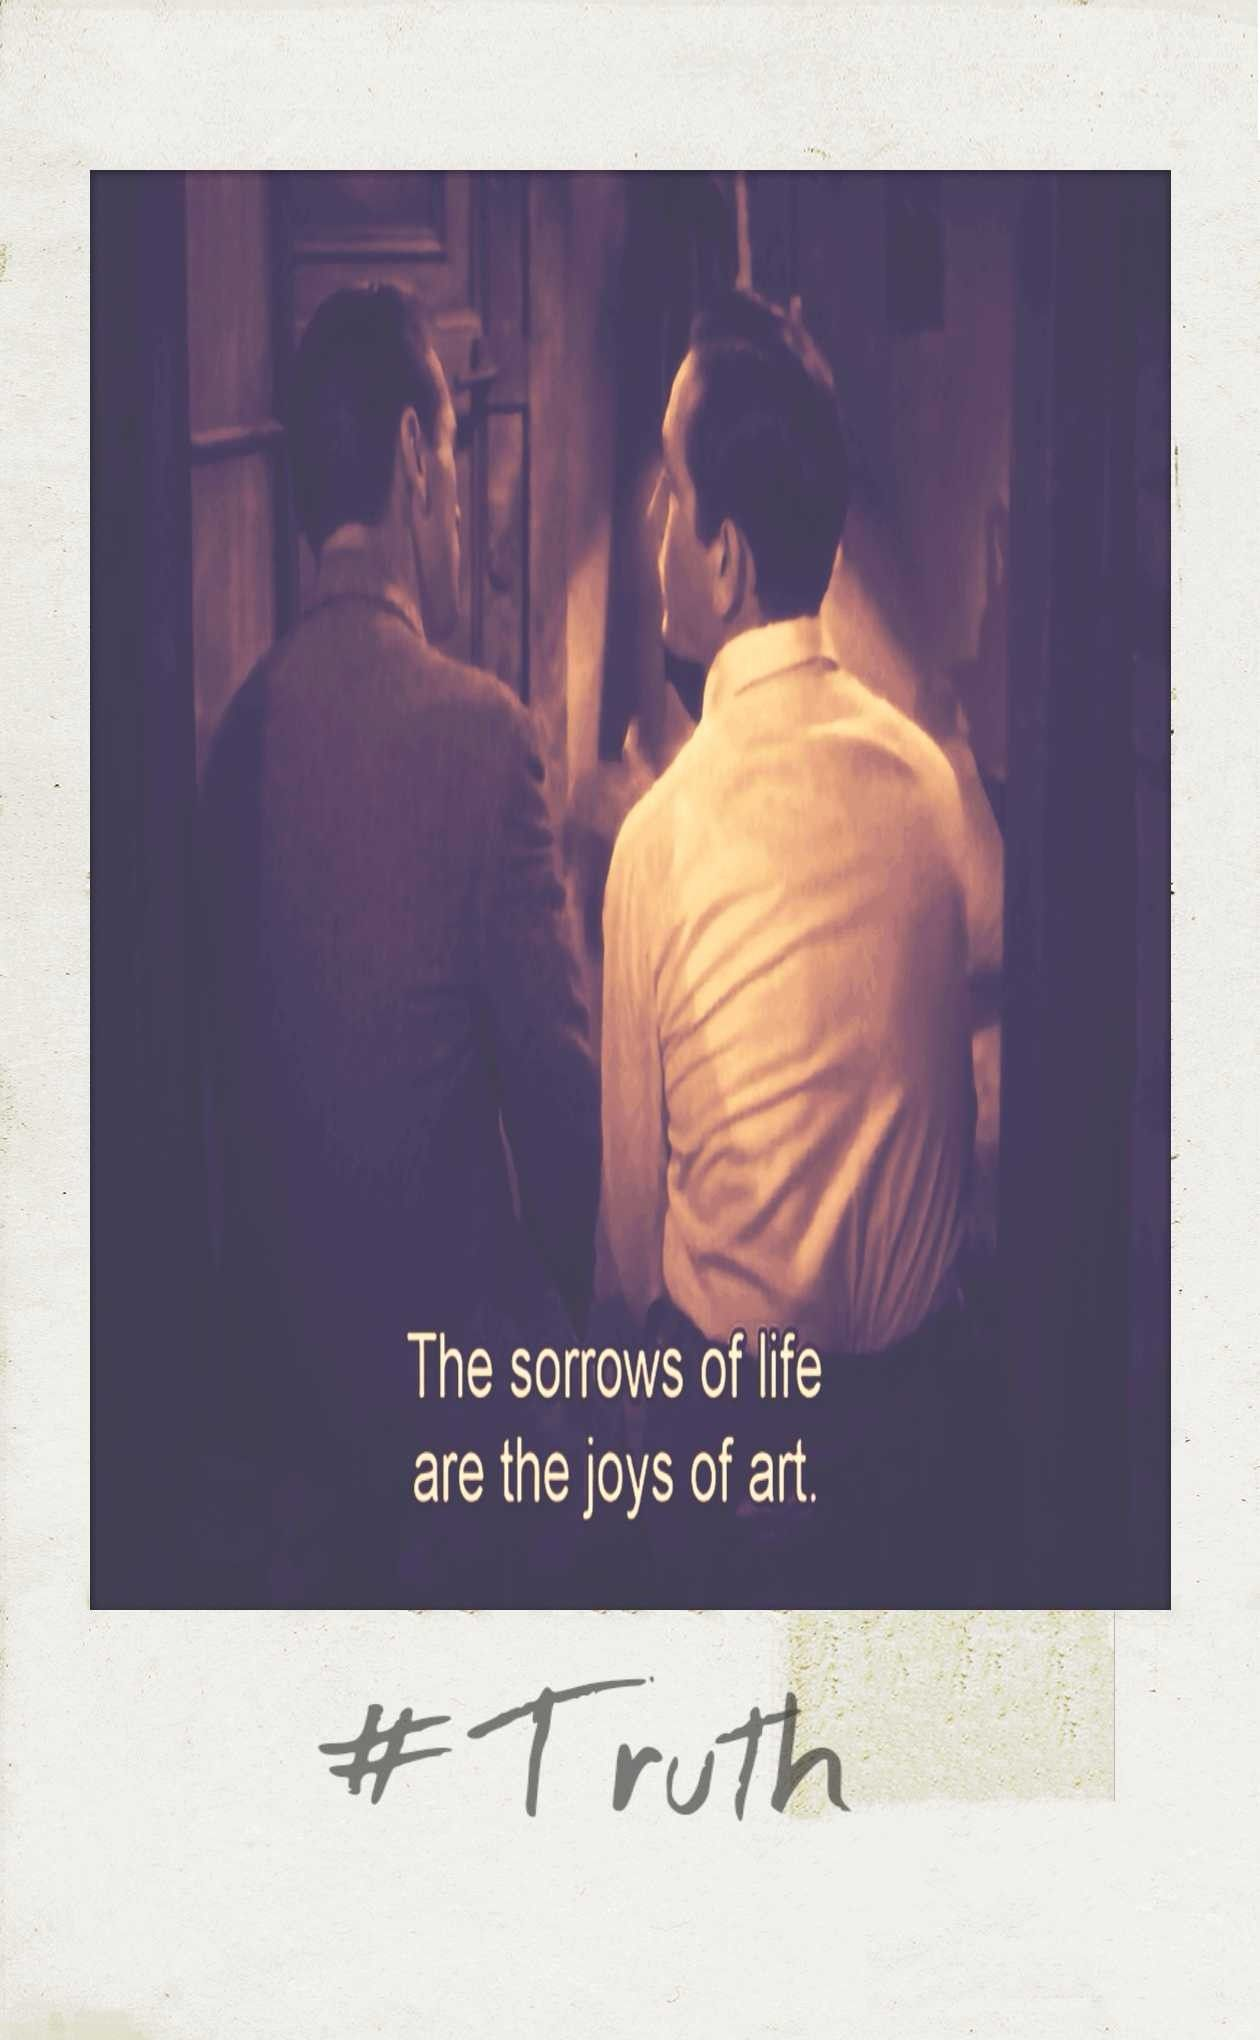 The Sorrows Of Life Are The Joys Of Art I Have Never Seen A Happy Artist Sadness And Sorrow Has Always Inspired Great Art Aesthetic Pictures Life Sorrow